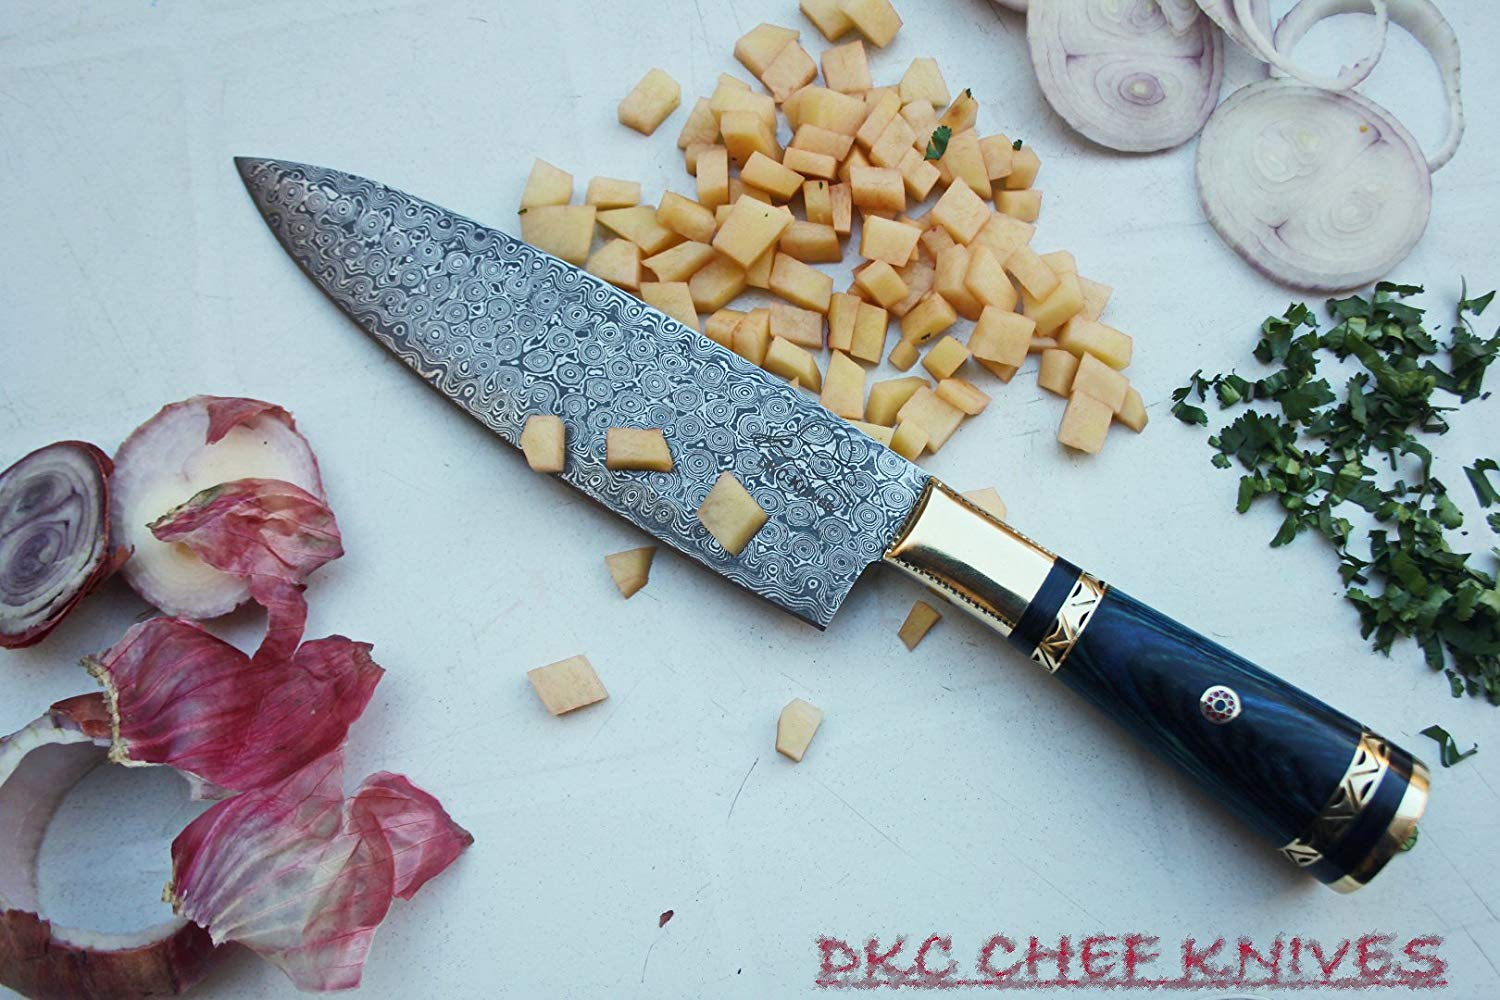 "(6 7/18) DKC-533-DS-BL Grand Master Chef Knife Blue Handle Damascus Steel DKC Knives 16.8 oz 12"" Long 7.5"" Blade (Blue Handle Damascus Blade)"